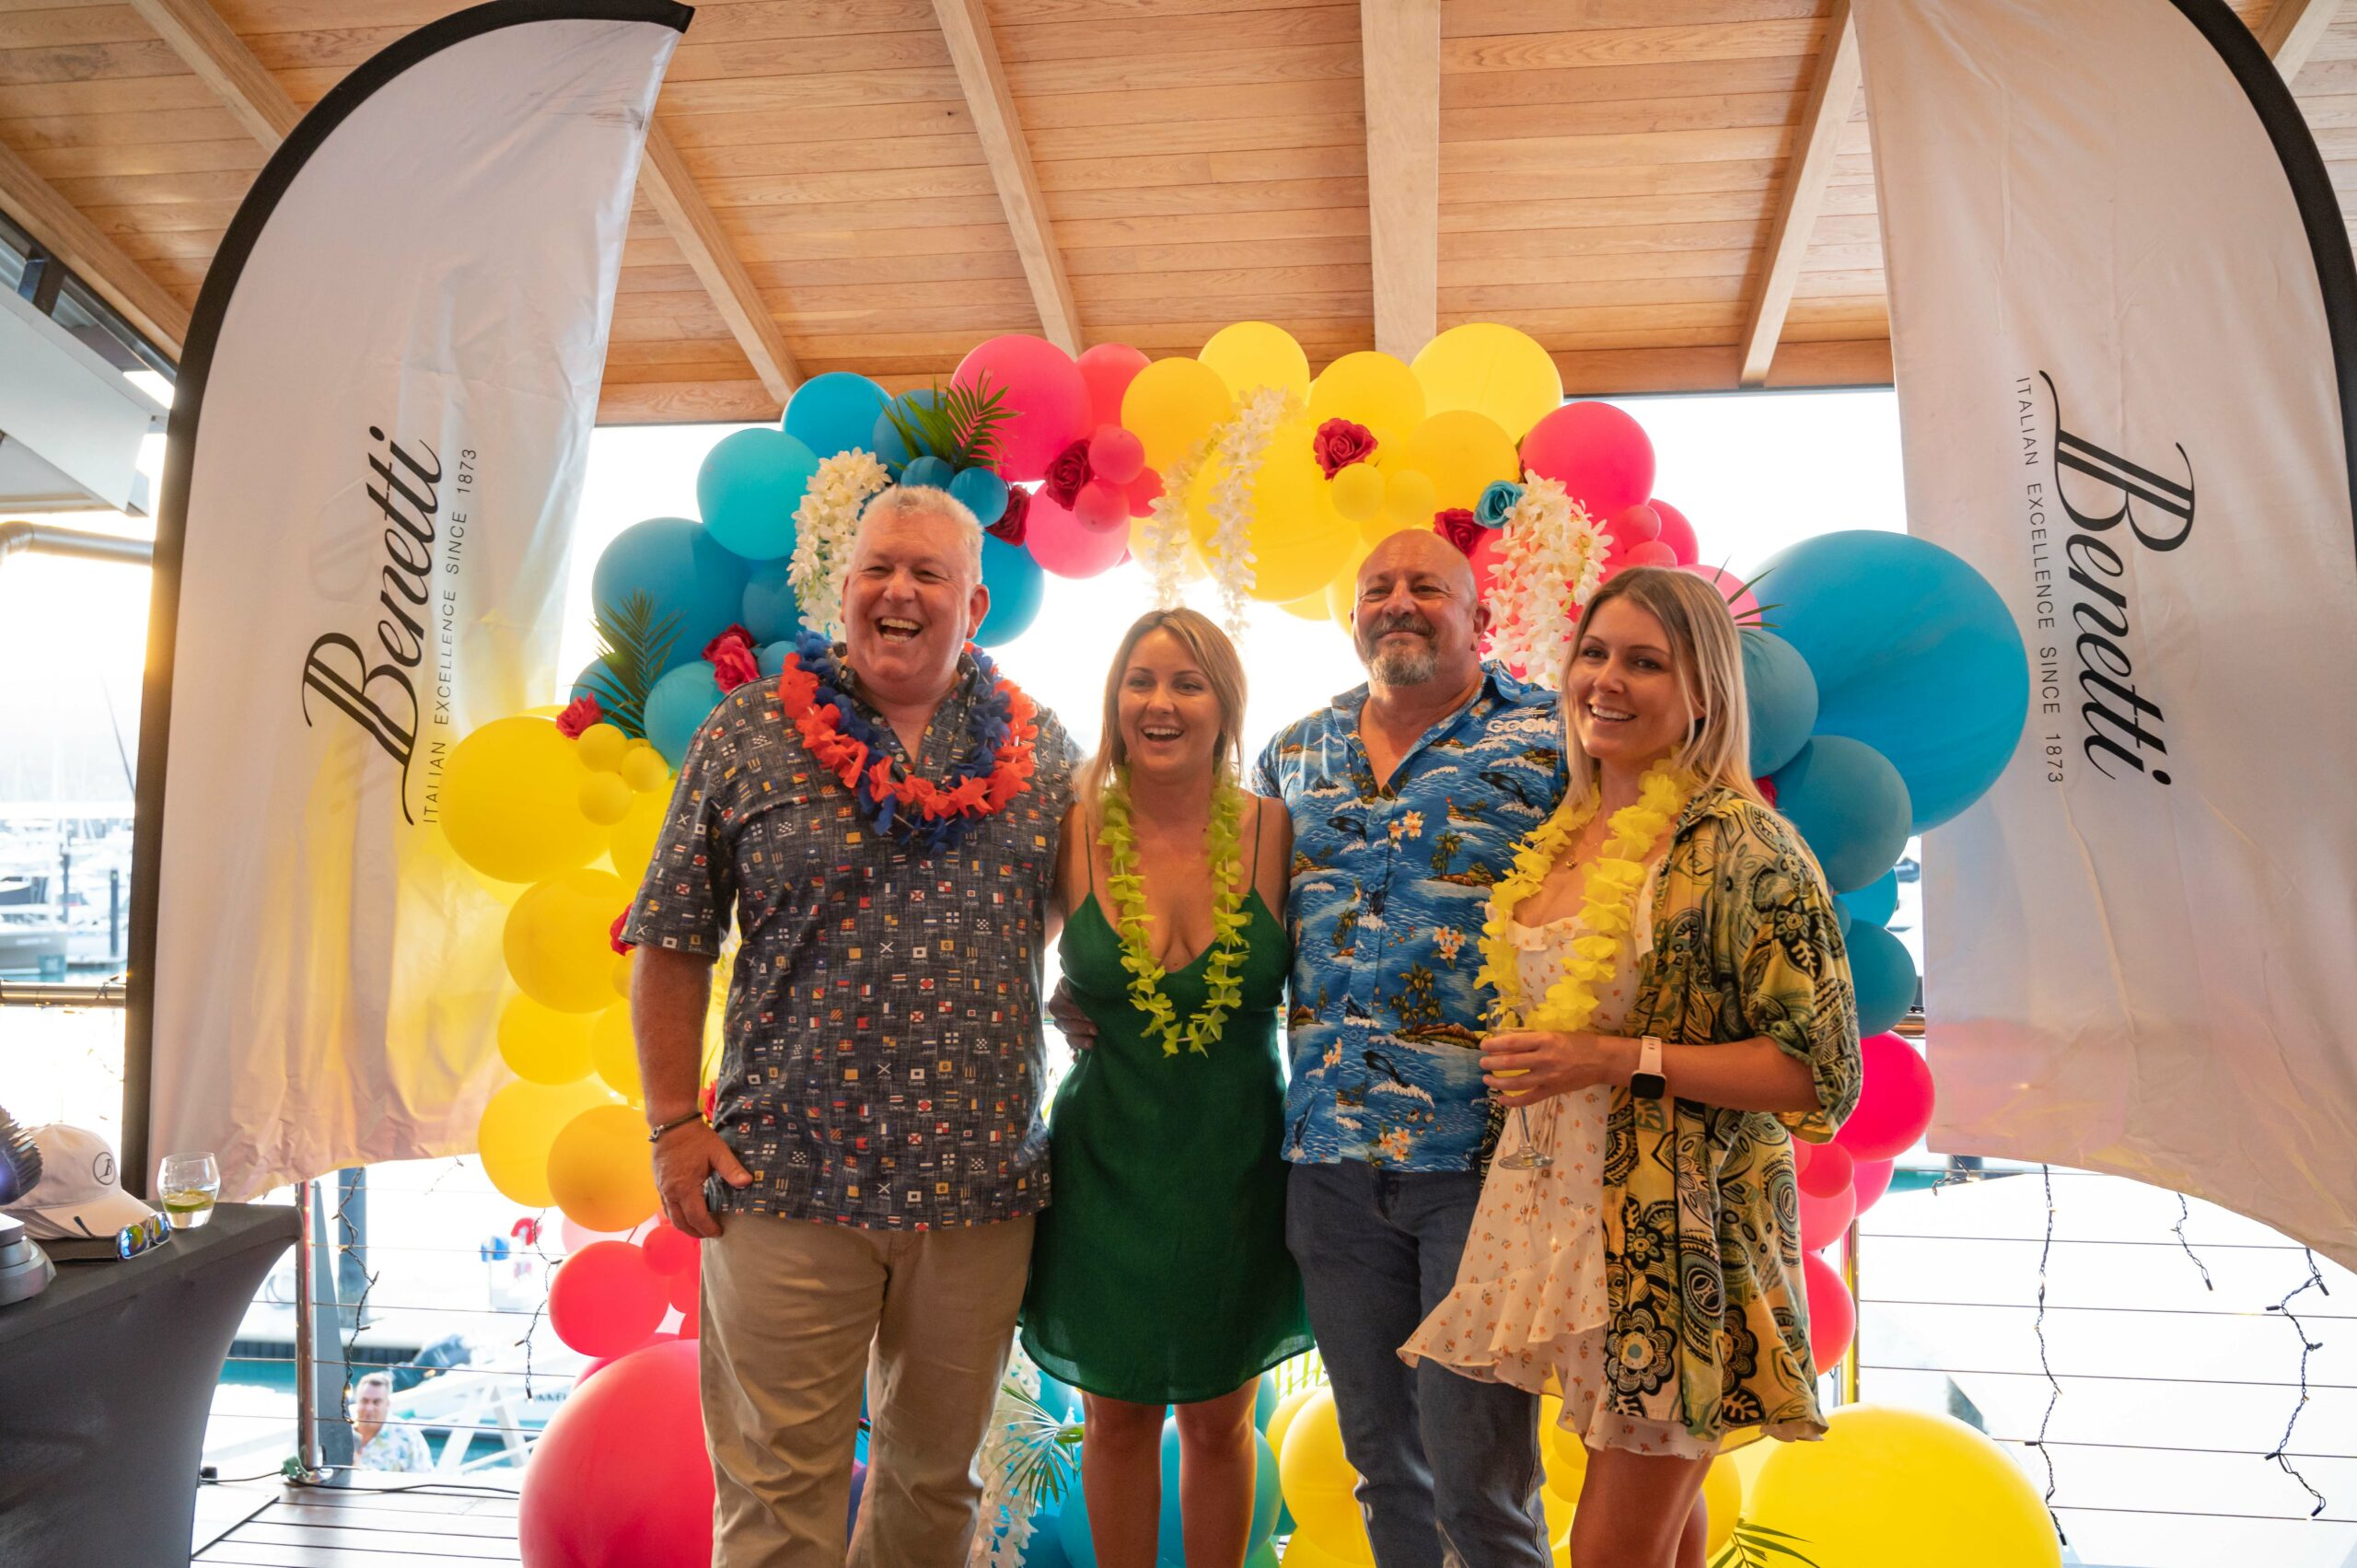 Guests enjoying the Queensland event in tropical clothes